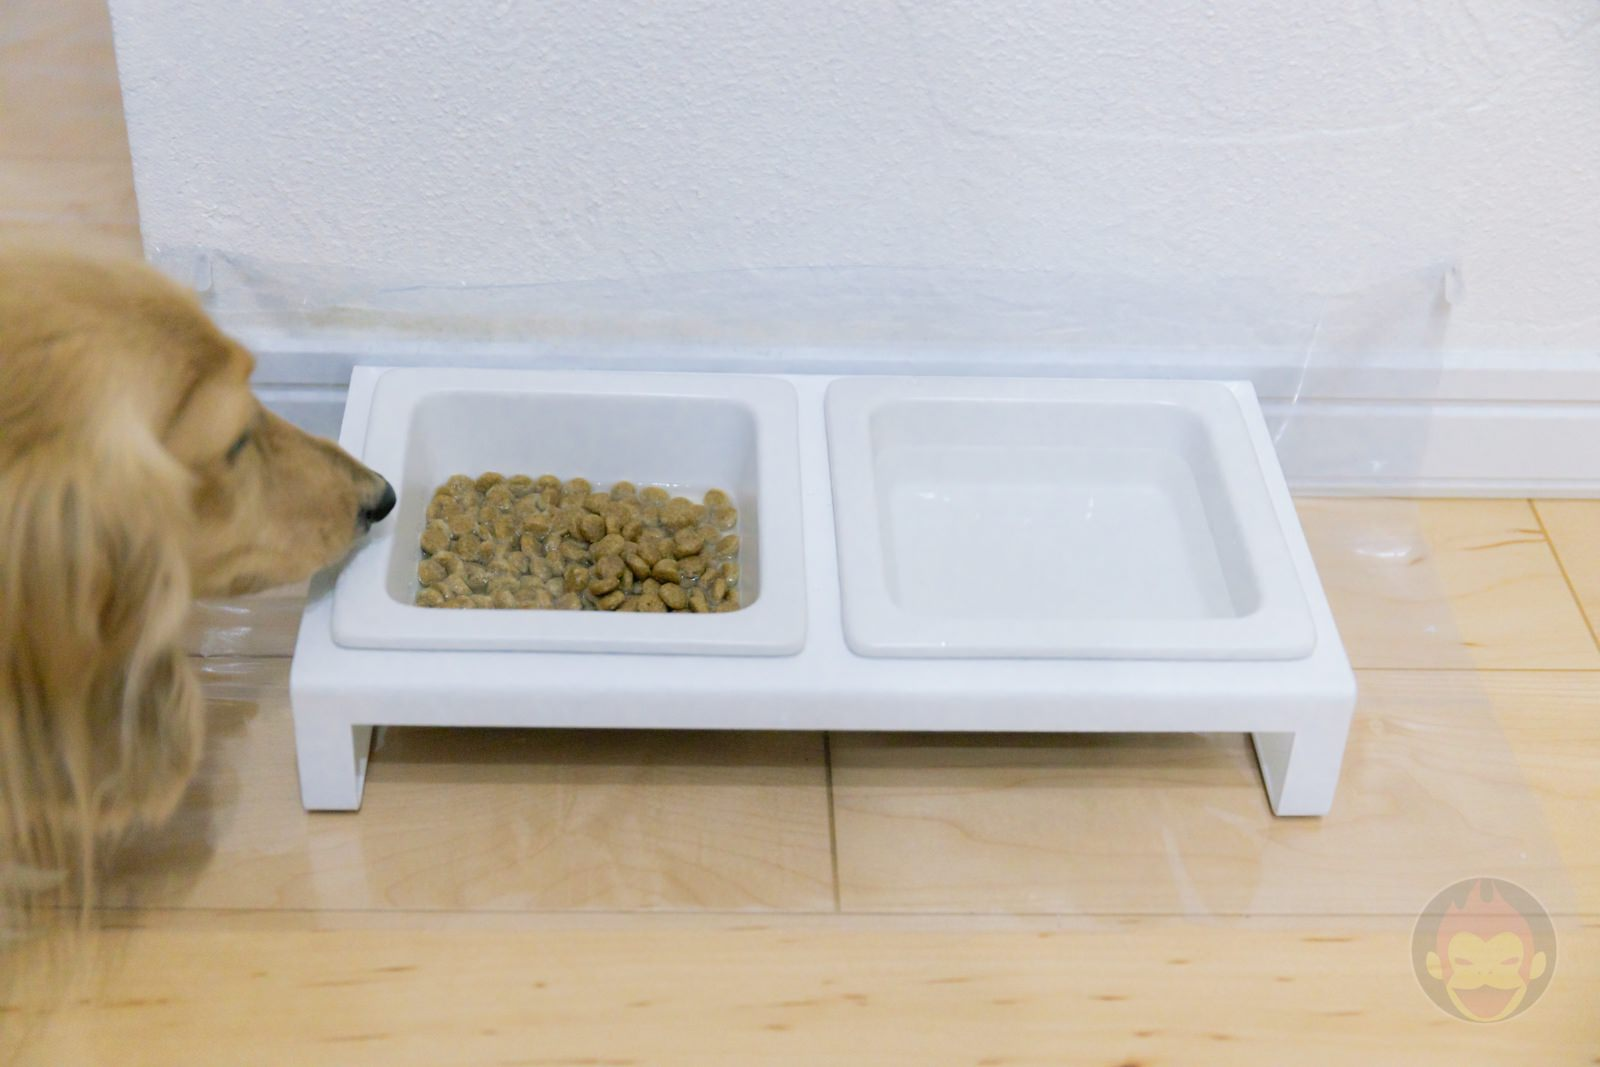 TOWER Pet food bowl stand set 10